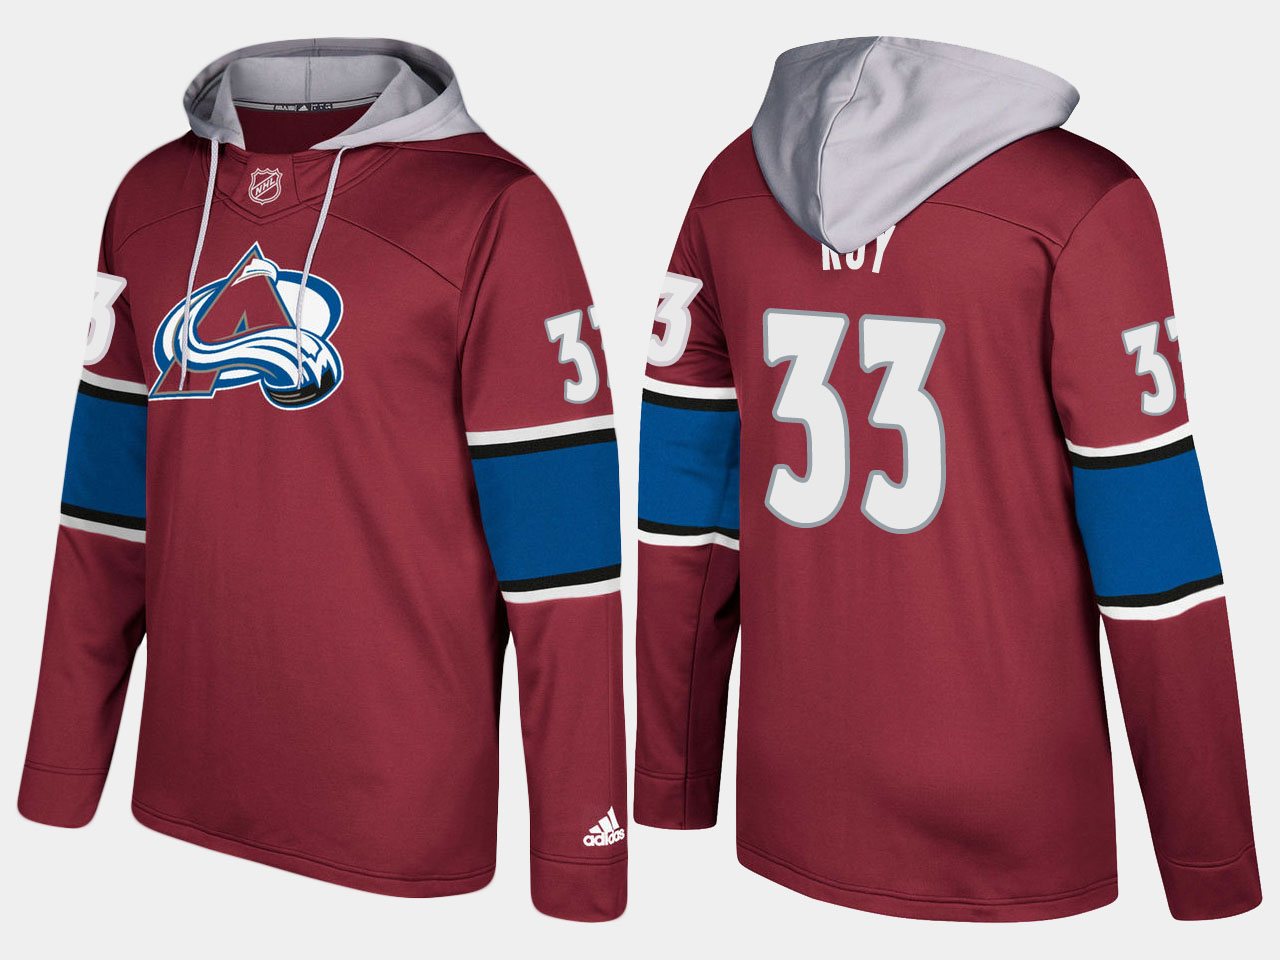 Men NHL Colorado avalanche retired 33 patrick roy burgundy hoodie